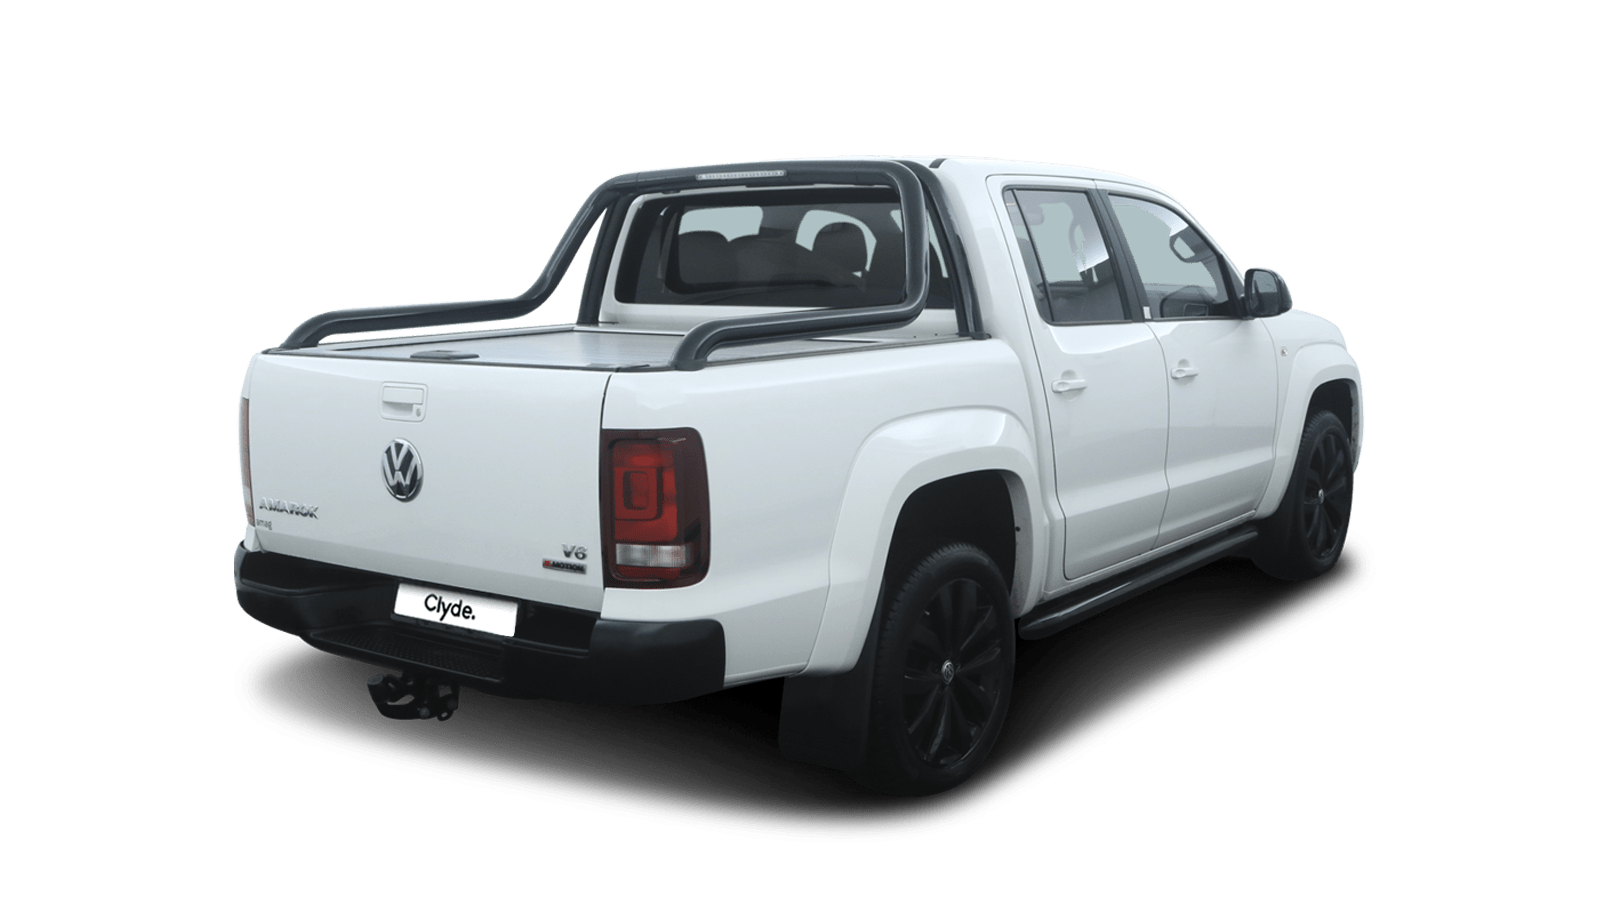 VW Amarok White back - Clyde car subscription